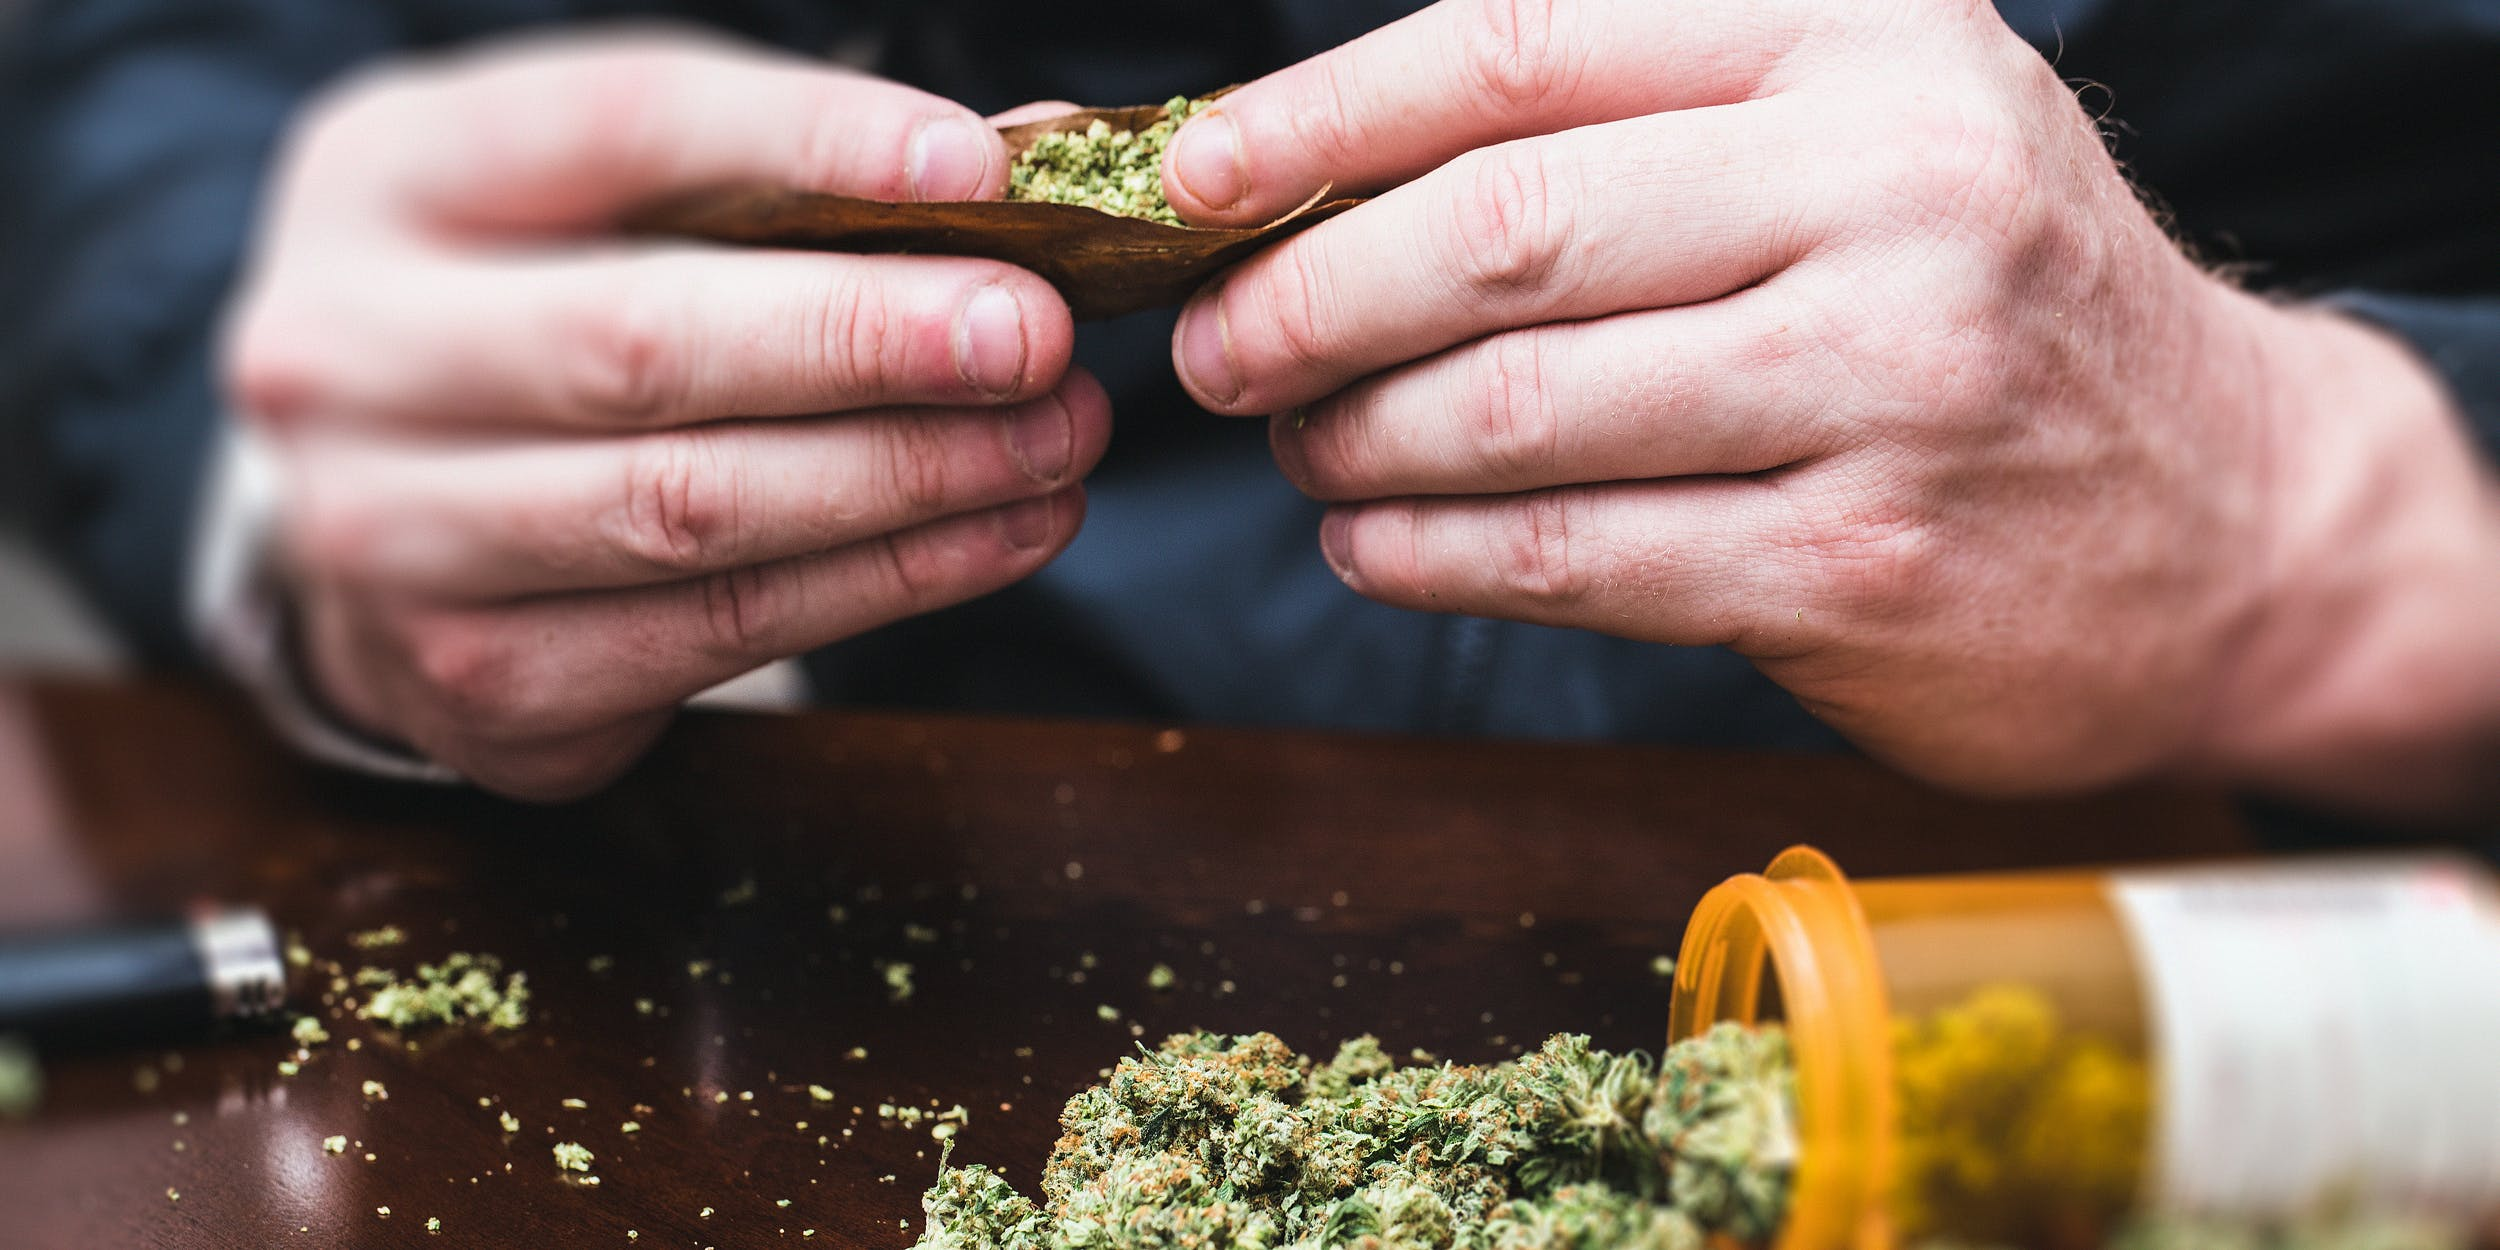 How to Pick The Right Licensed Producer of Medical Cannabis